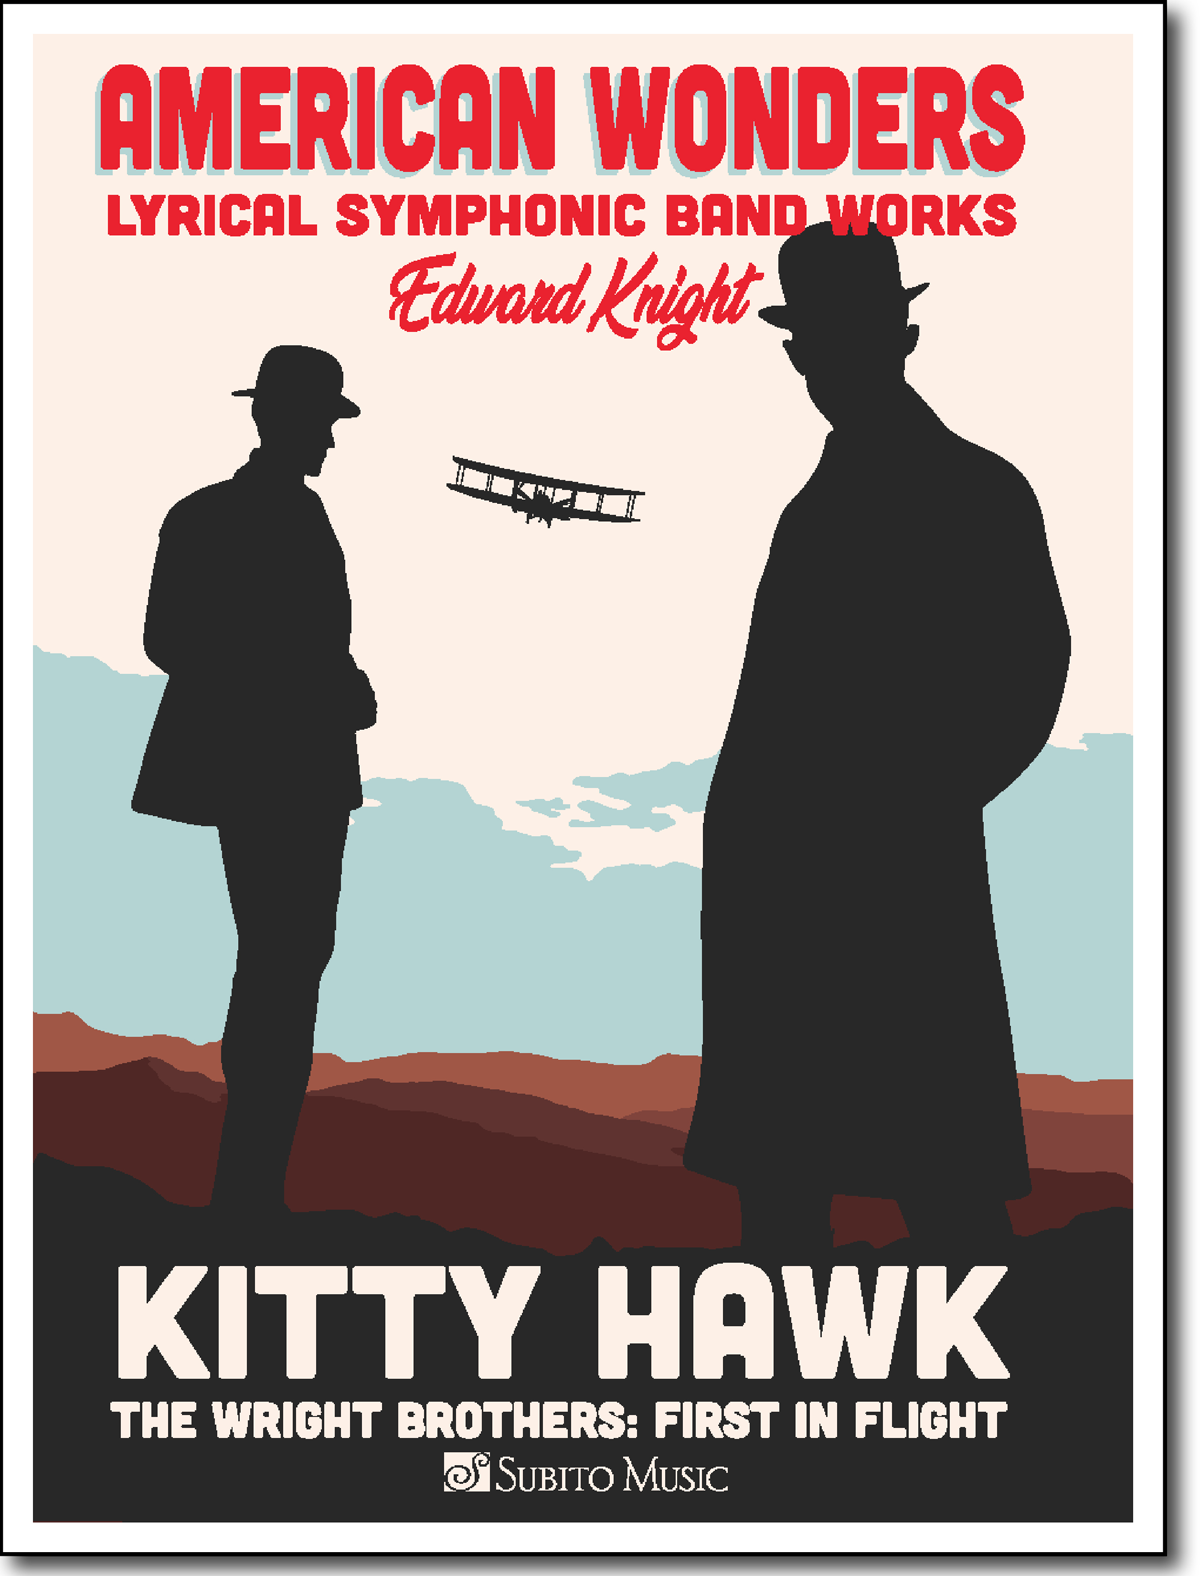 American Wonders: Kitty Hawk for Concert Band